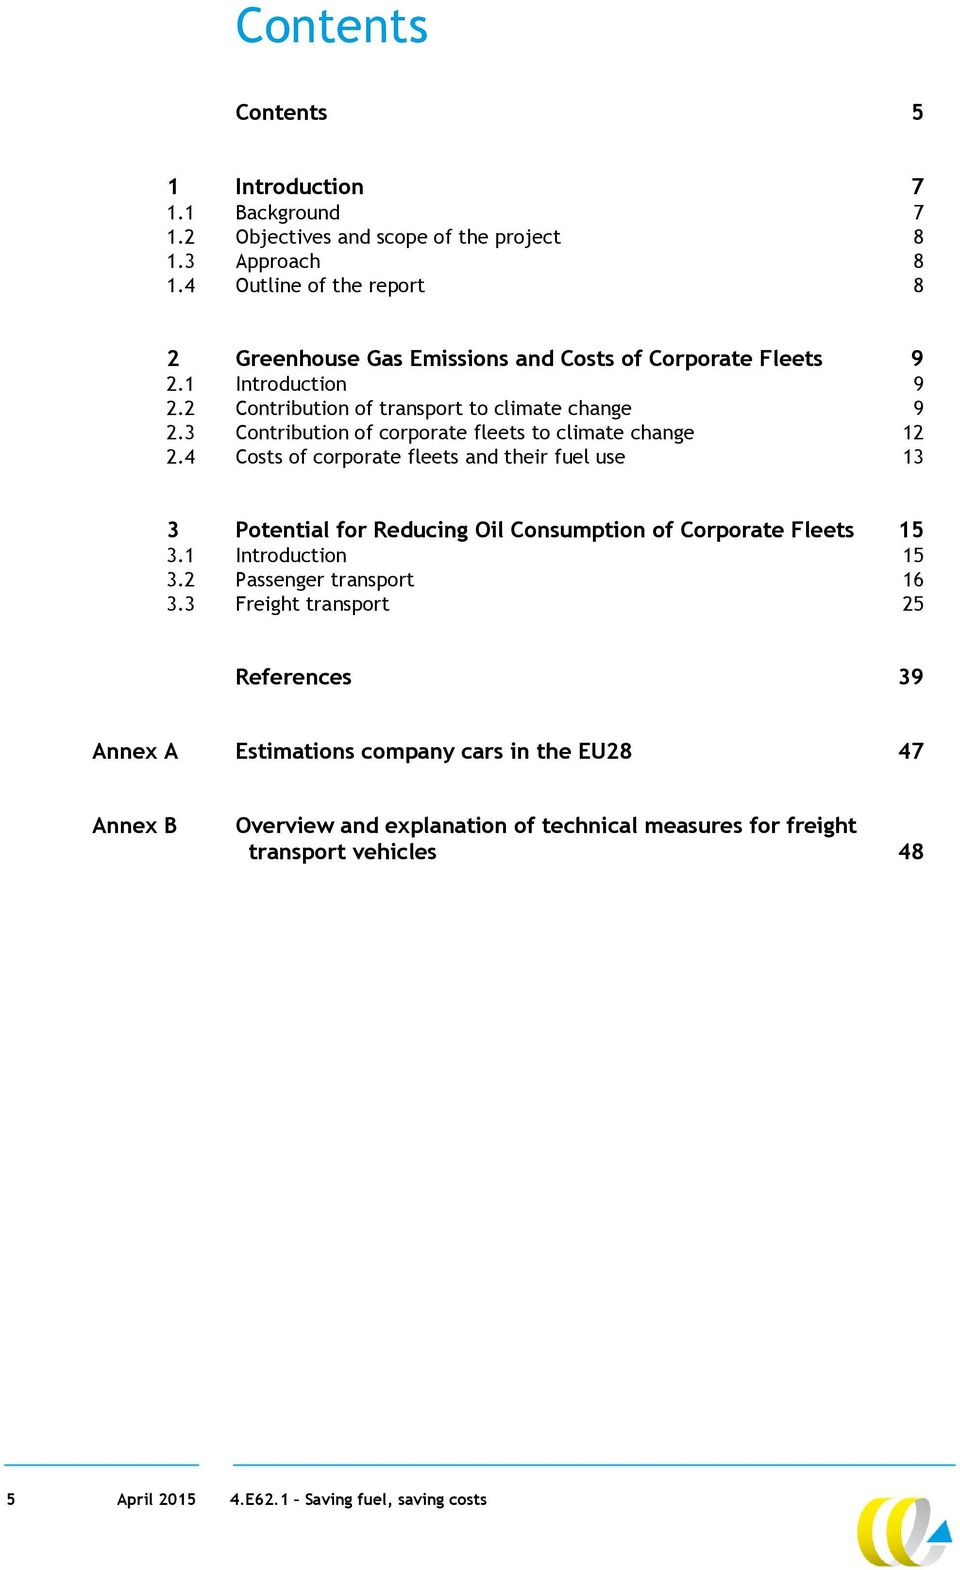 3 Contribution of corporate fleets to climate change 12 2.4 Costs of corporate fleets and their fuel use 13 3 Potential for Reducing Oil Consumption of Corporate Fleets 15 3.